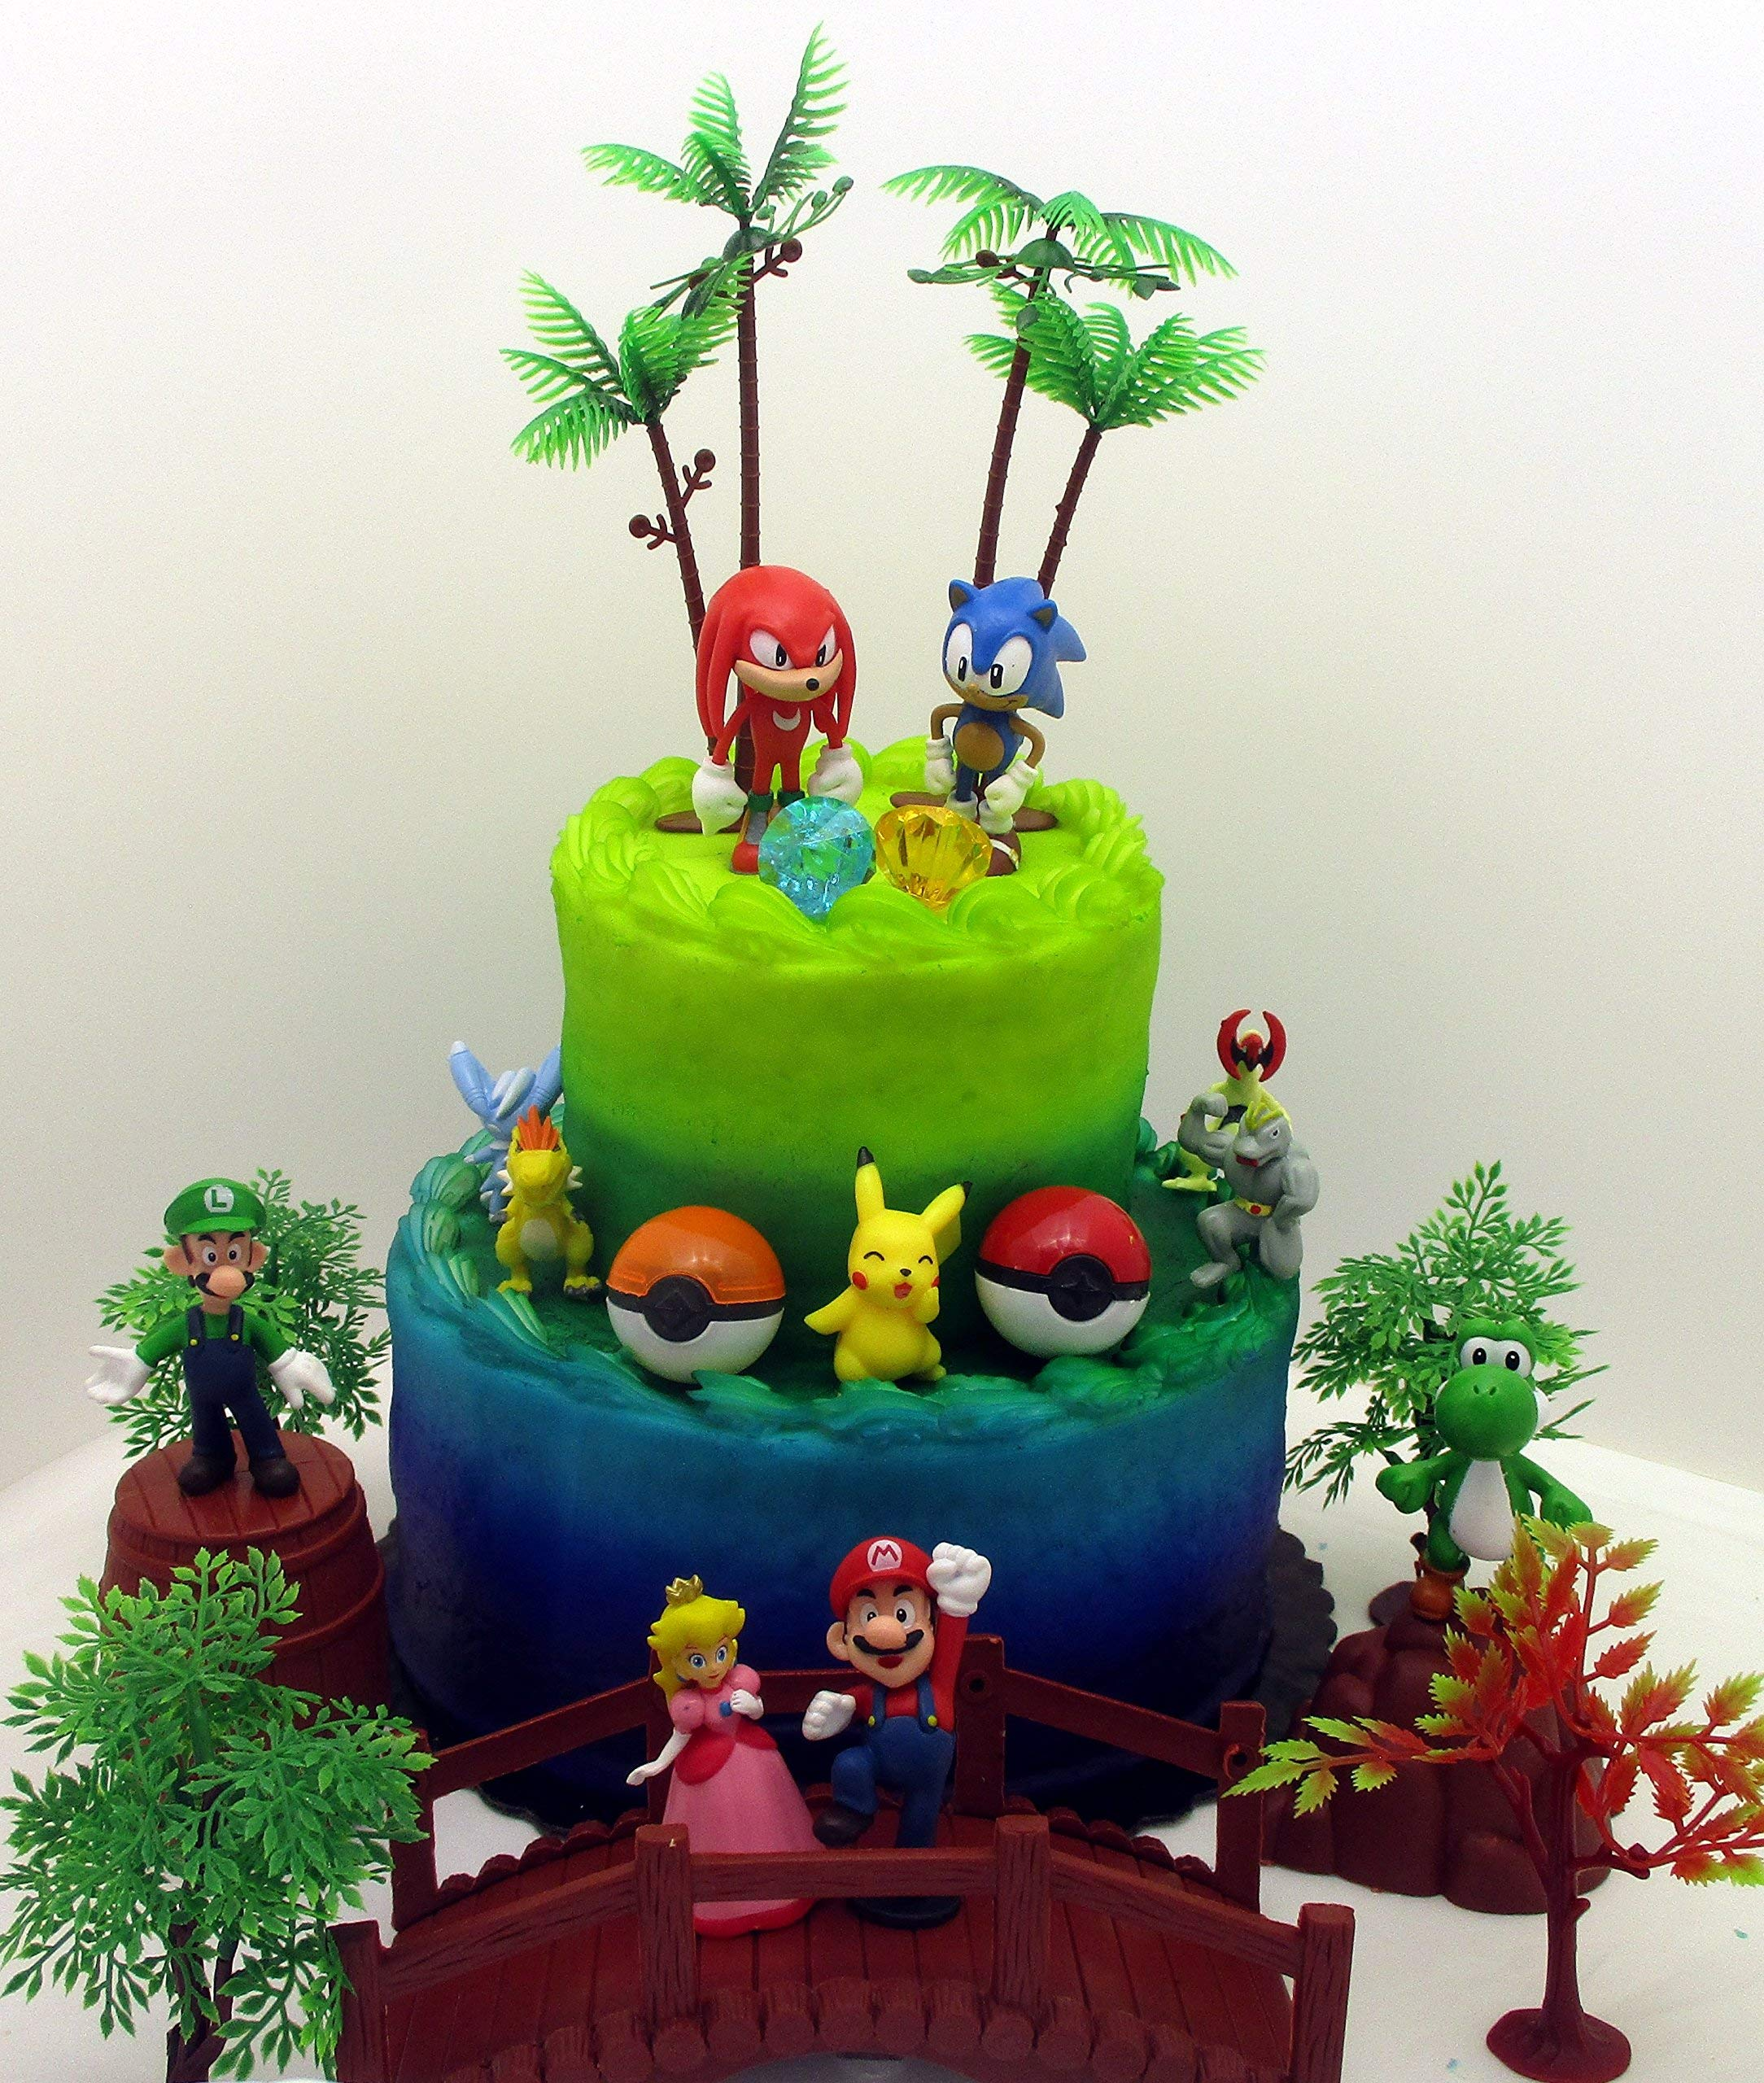 Video Gaming Themed Birthday Cake Topper Set Featuring Random SONIC Figures and Random MARIO BROTHERS Figures and Other Iconic Gaming Characters by Cake Topper